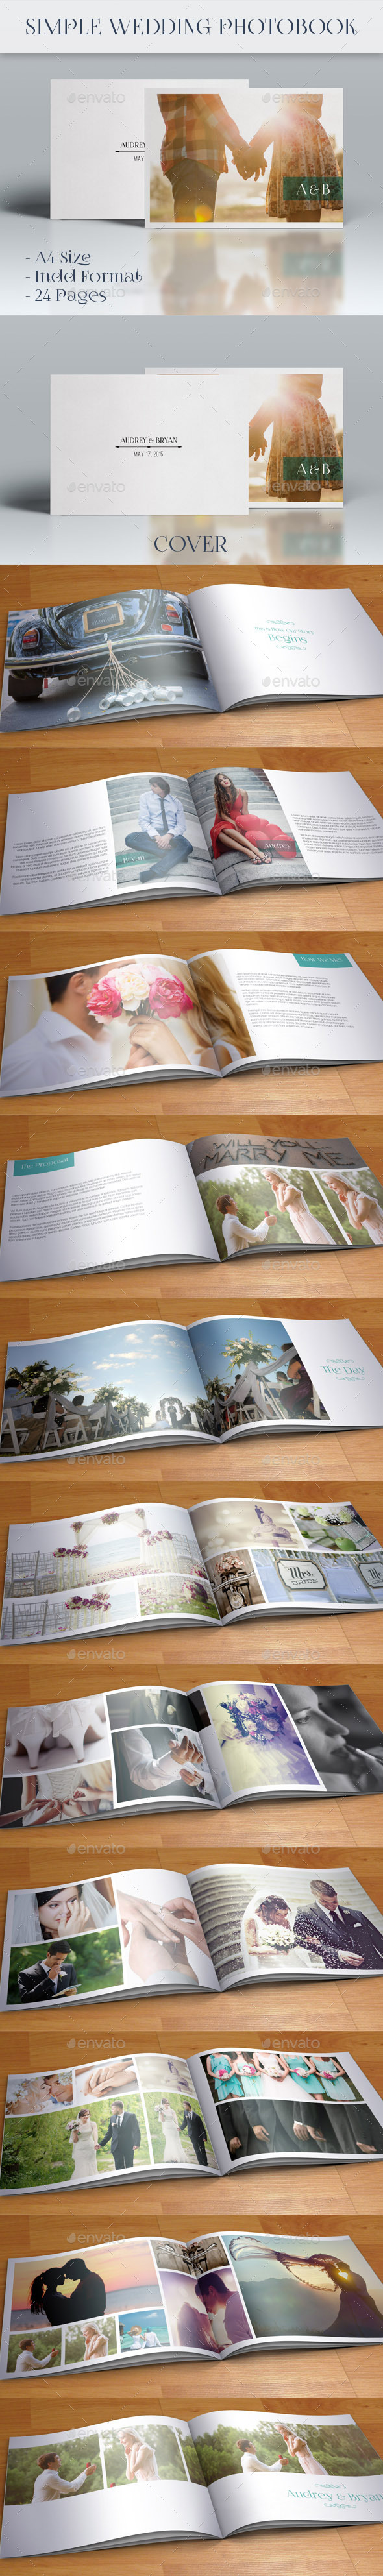 Simple Wedding Photobook